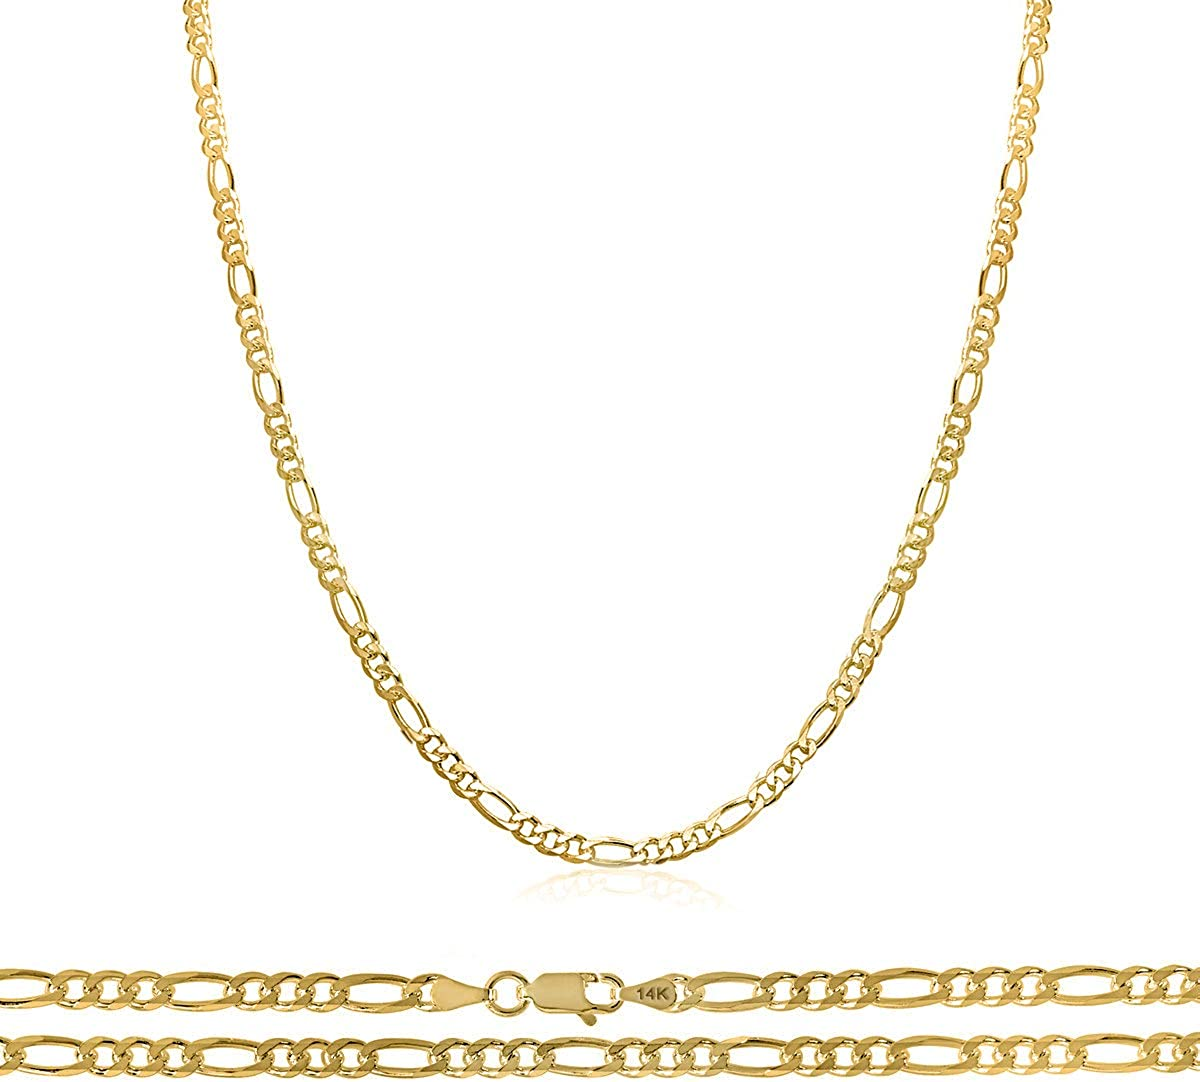 Orostar 14K Gold 2.5MM Figaro Chain in Yellow Gold   Strong & Unisex Figaro Link Necklace from Size 16-24 inches